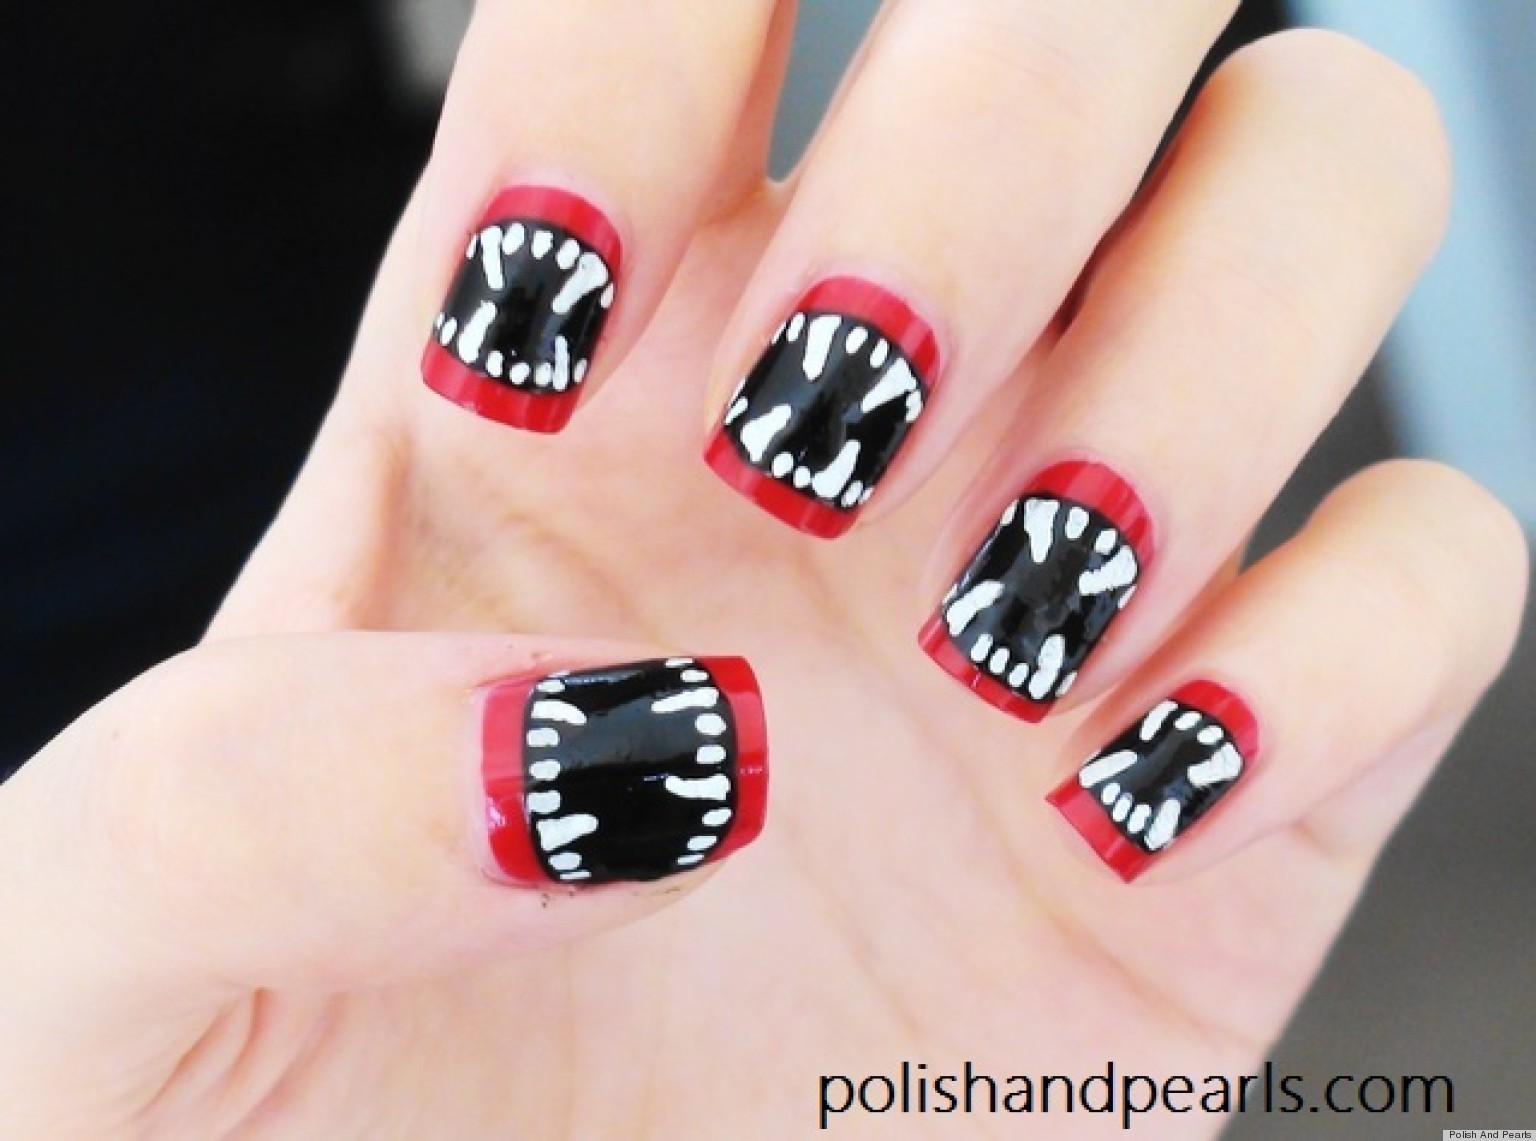 diy nail art halloween inspired vampire fangs manicure video. Black Bedroom Furniture Sets. Home Design Ideas